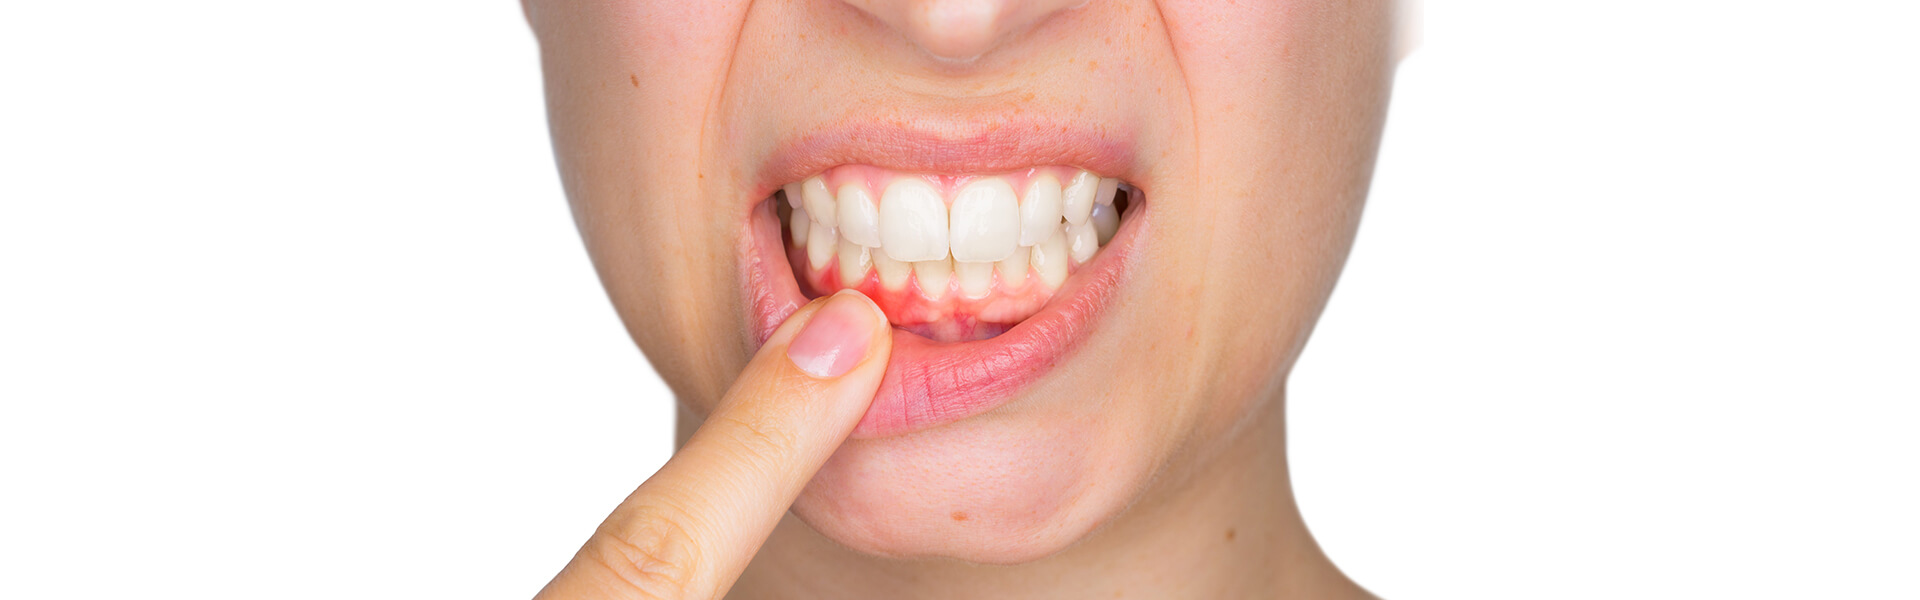 THERE IS A DISEASE ORIGINATING IN THE MOUTH THAT'S MORE COMMON THAN YOU THINK.